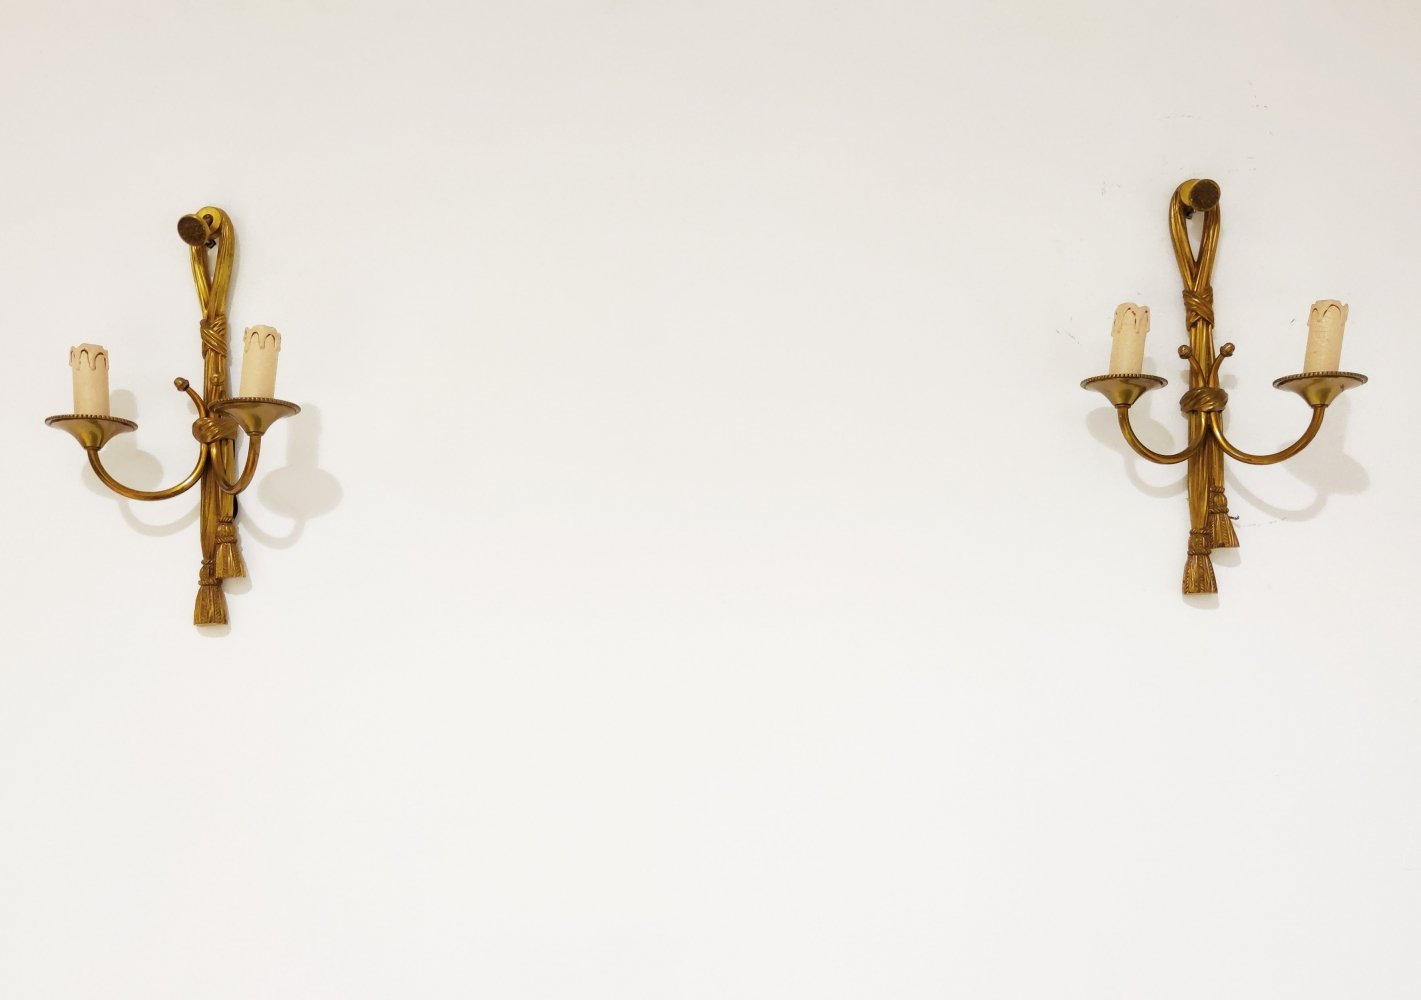 Pair of gilt metal rope wall lamps, 1960s